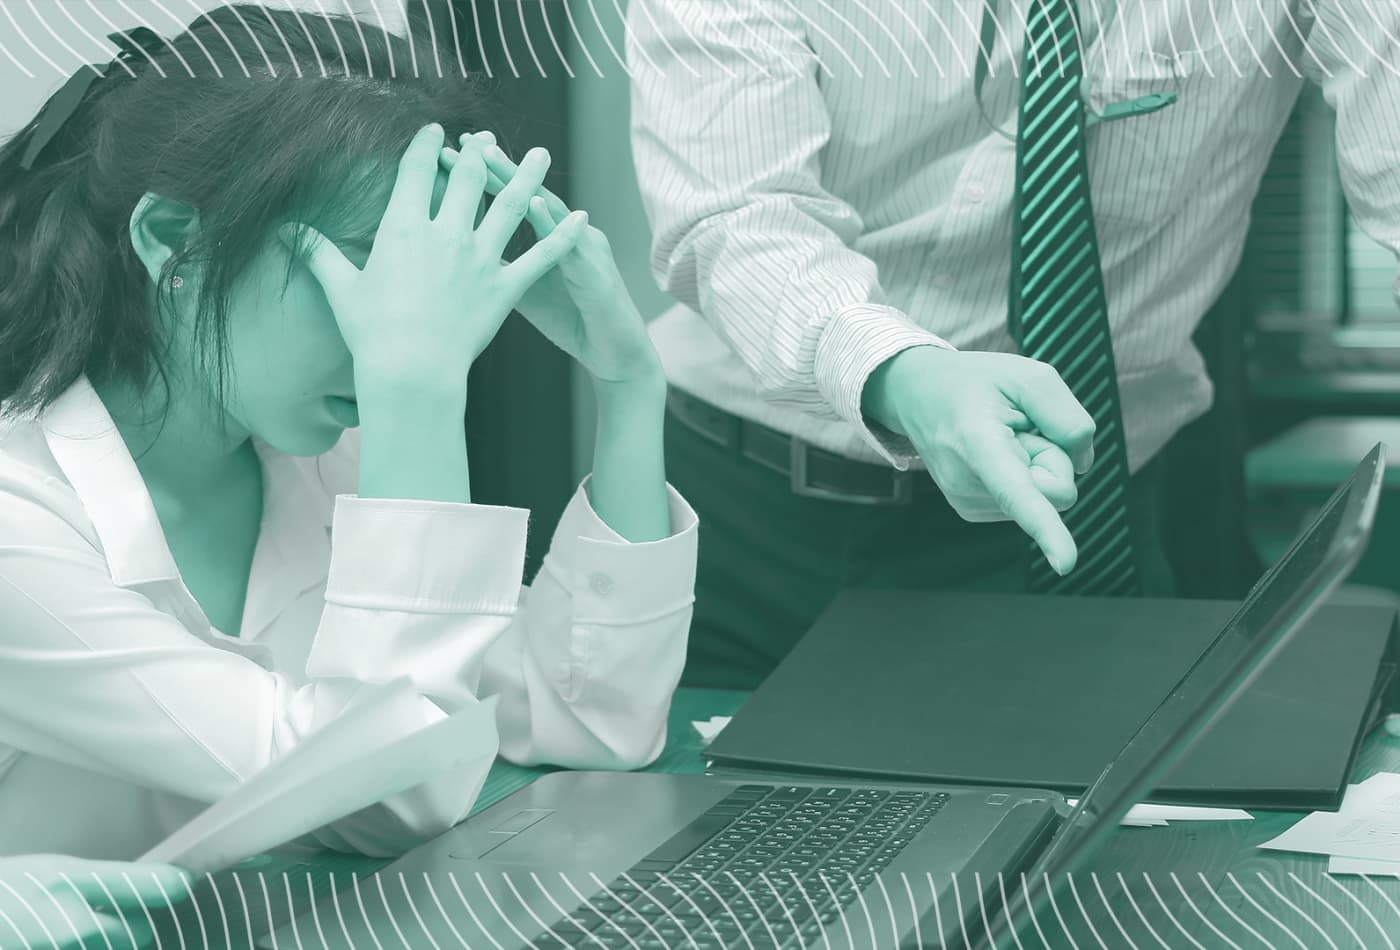 The best way to deal with a toxic coworker